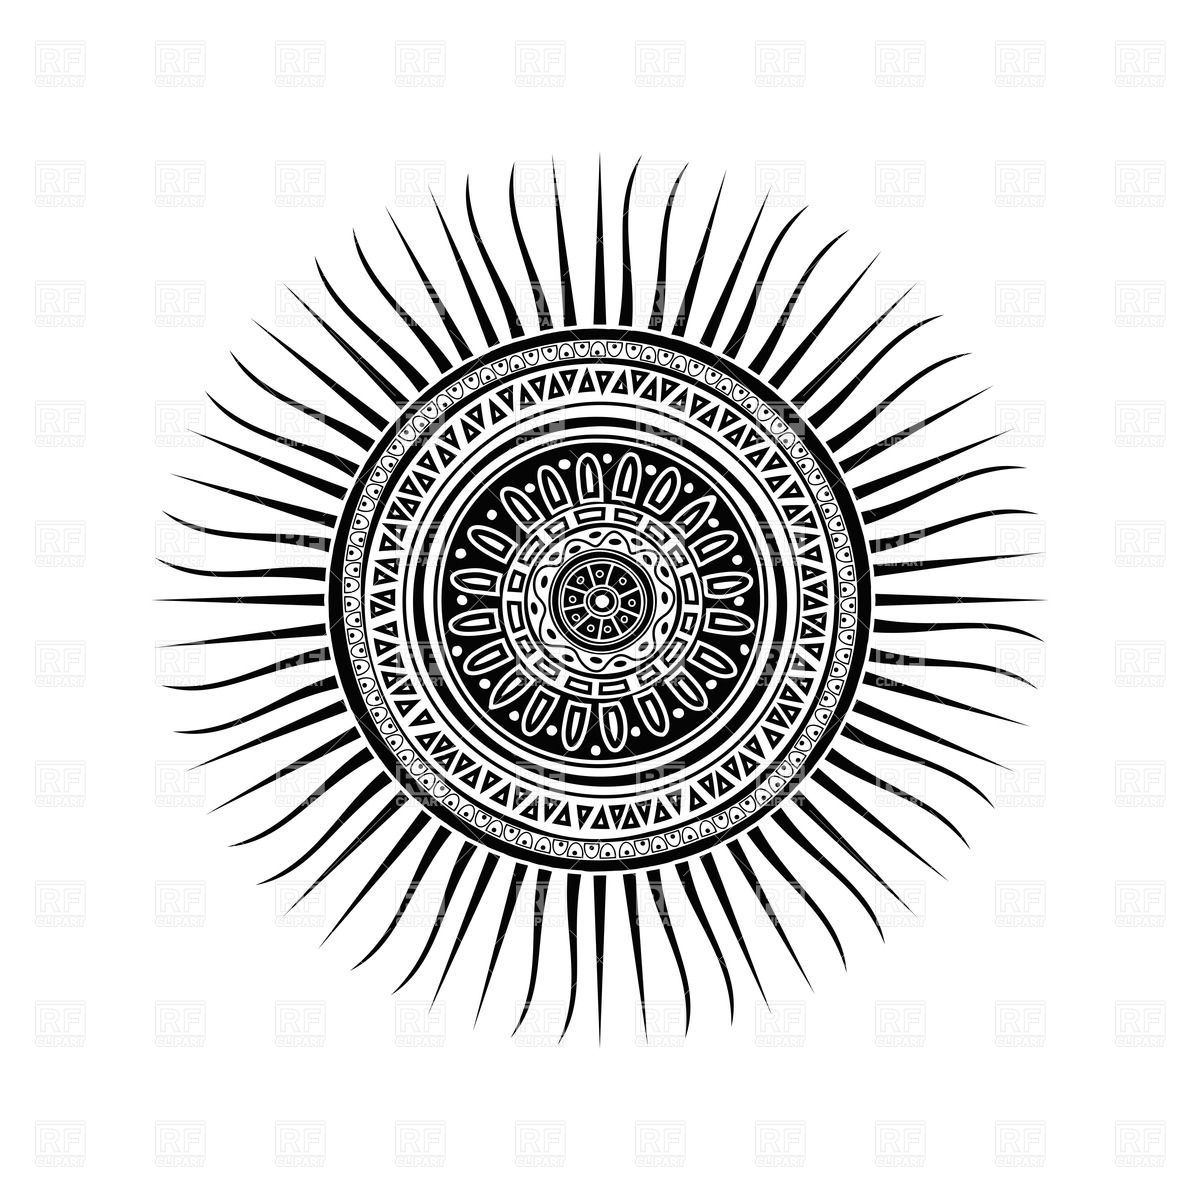 de59b93658fac Mayan sun symbol, round tattoo ornament, 28184, download royalty-free  vector clipart (EPS)